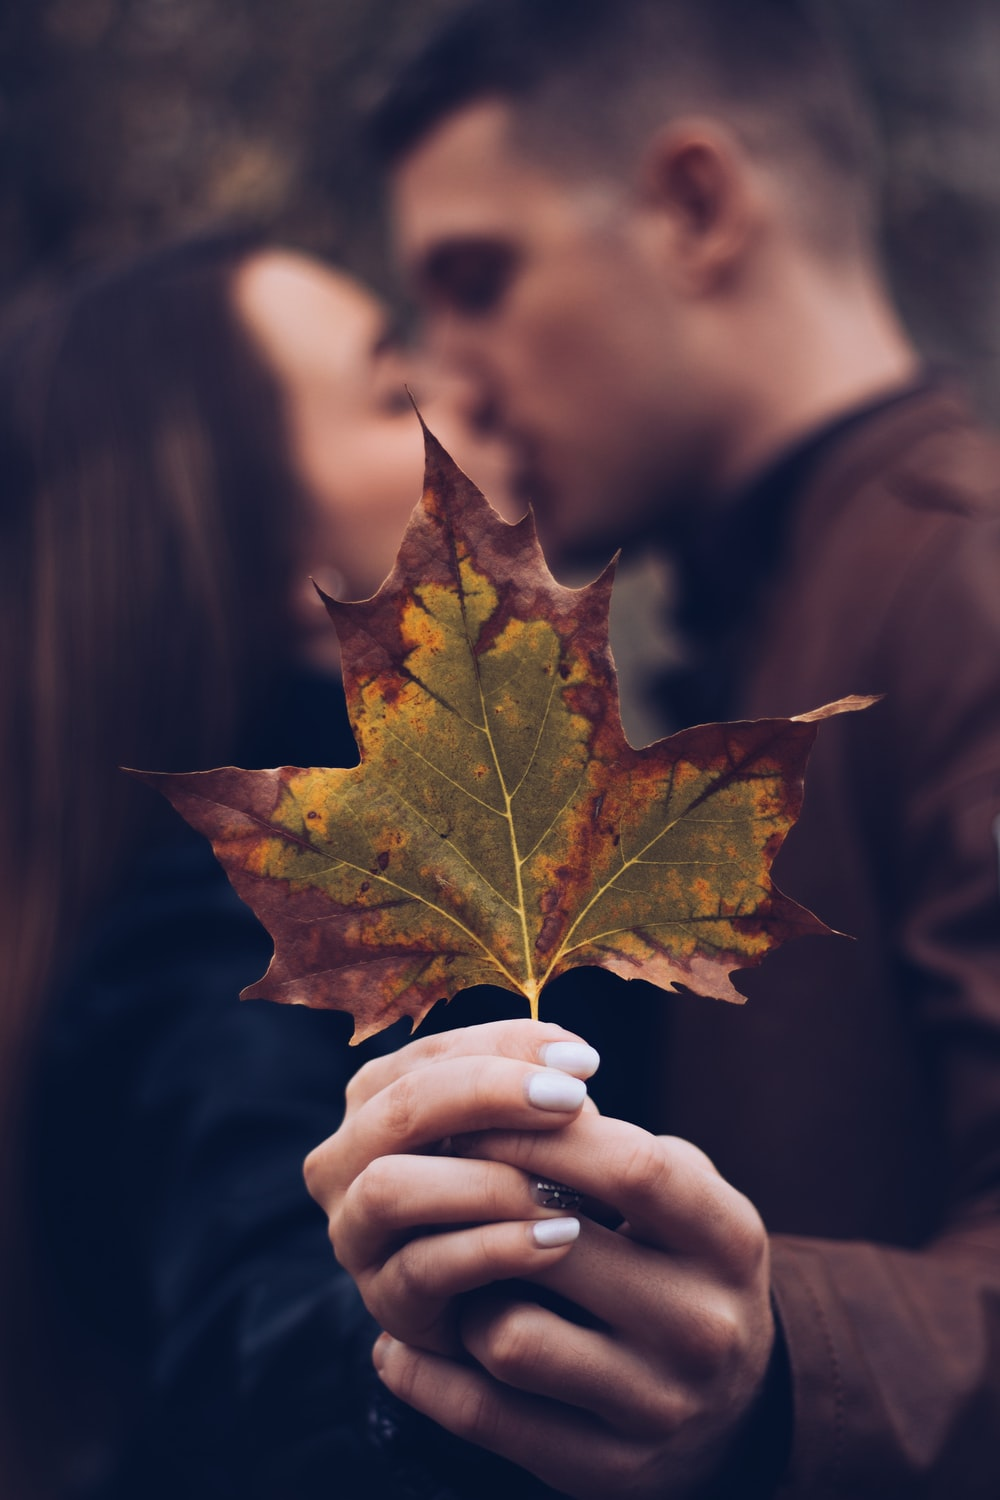 man and woman holding leaf while kissing